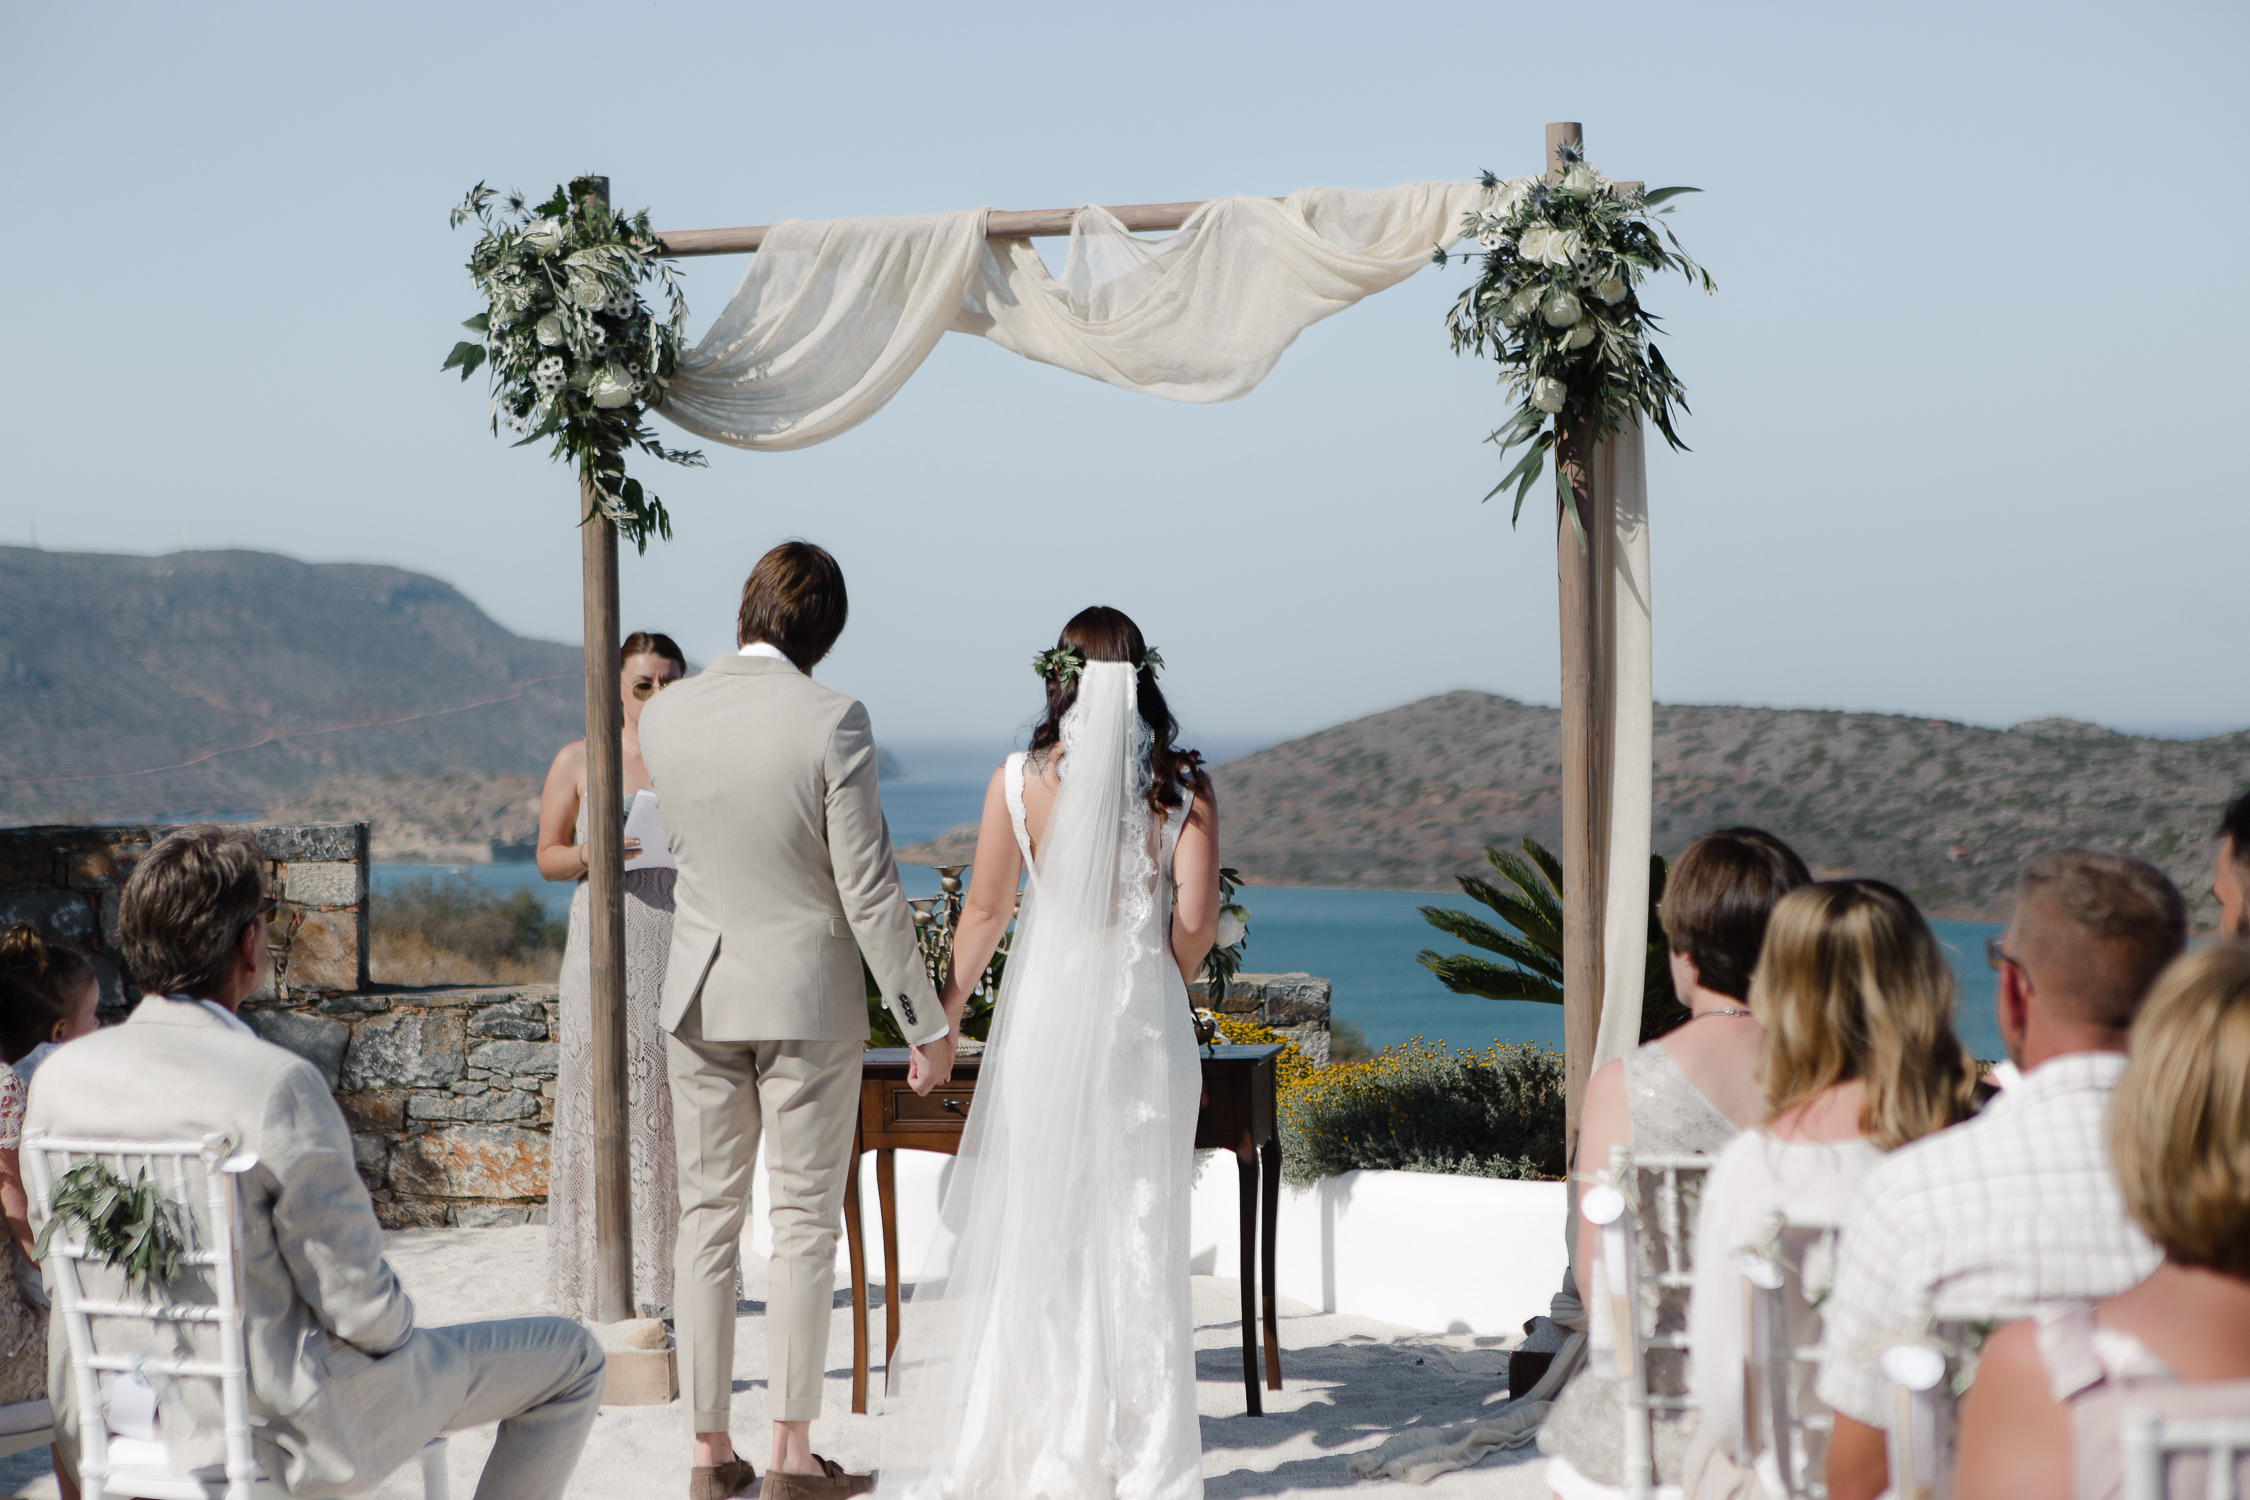 Fotomagoria - Elounda - Crete - Greece Wedding 139.jpg